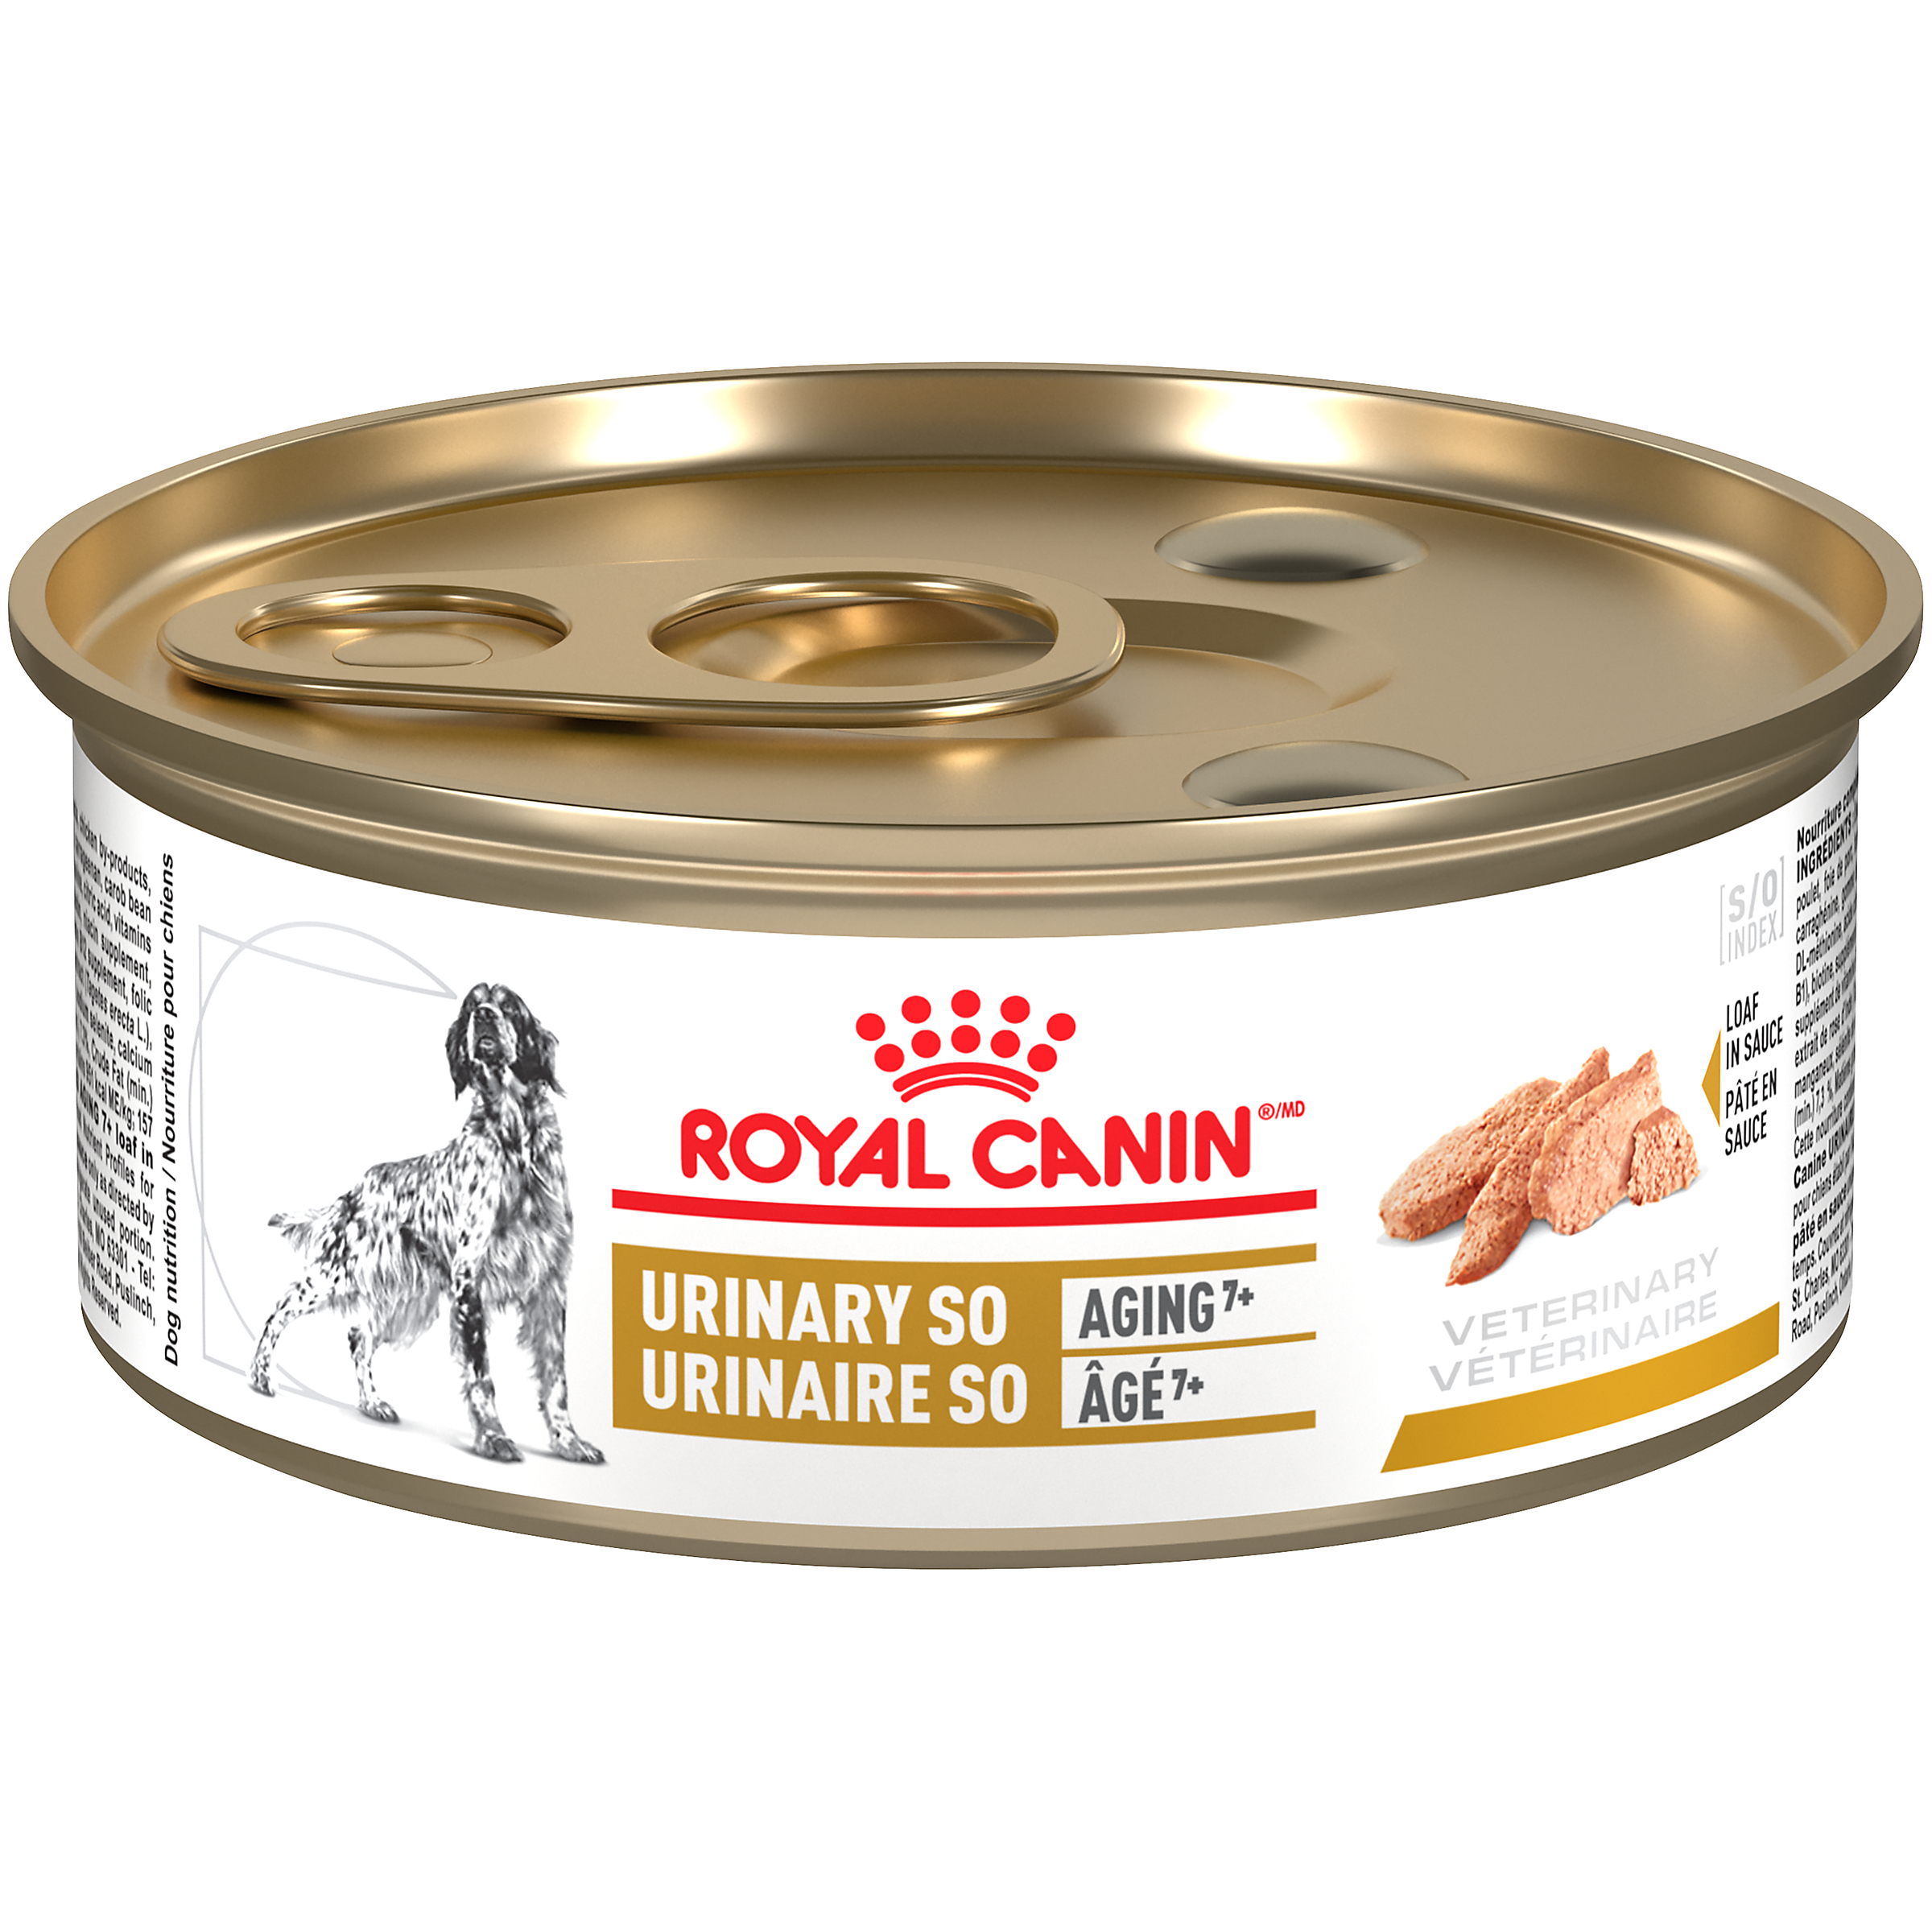 Royal Canin Veterinary Diet Canine Urinary SO Aging 7+ Canned Dog Food